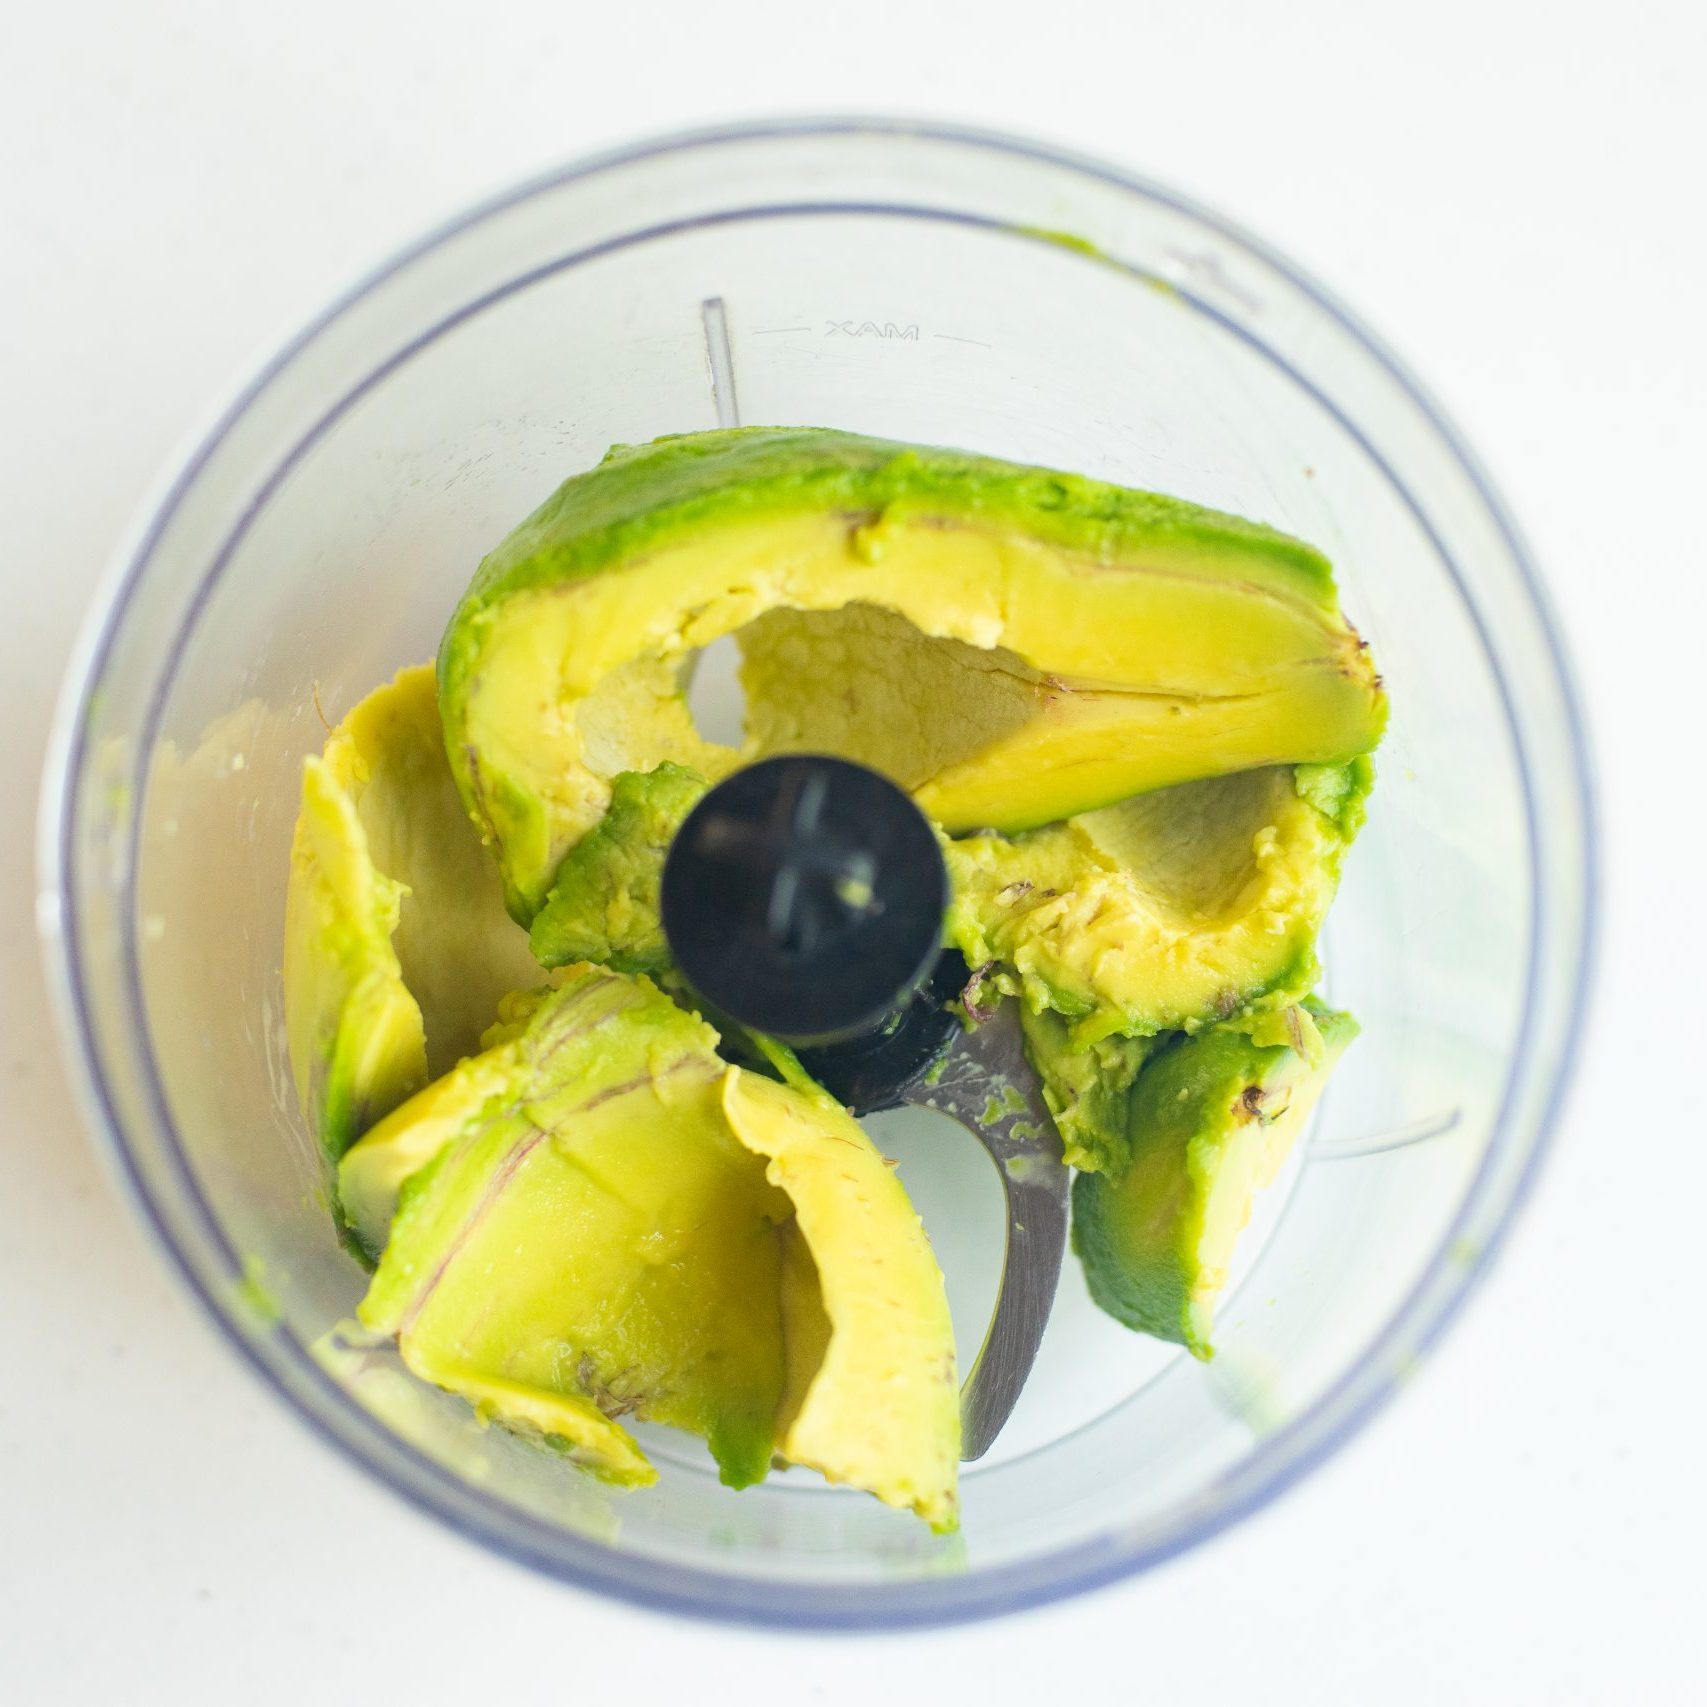 picture of avocado in a food processor